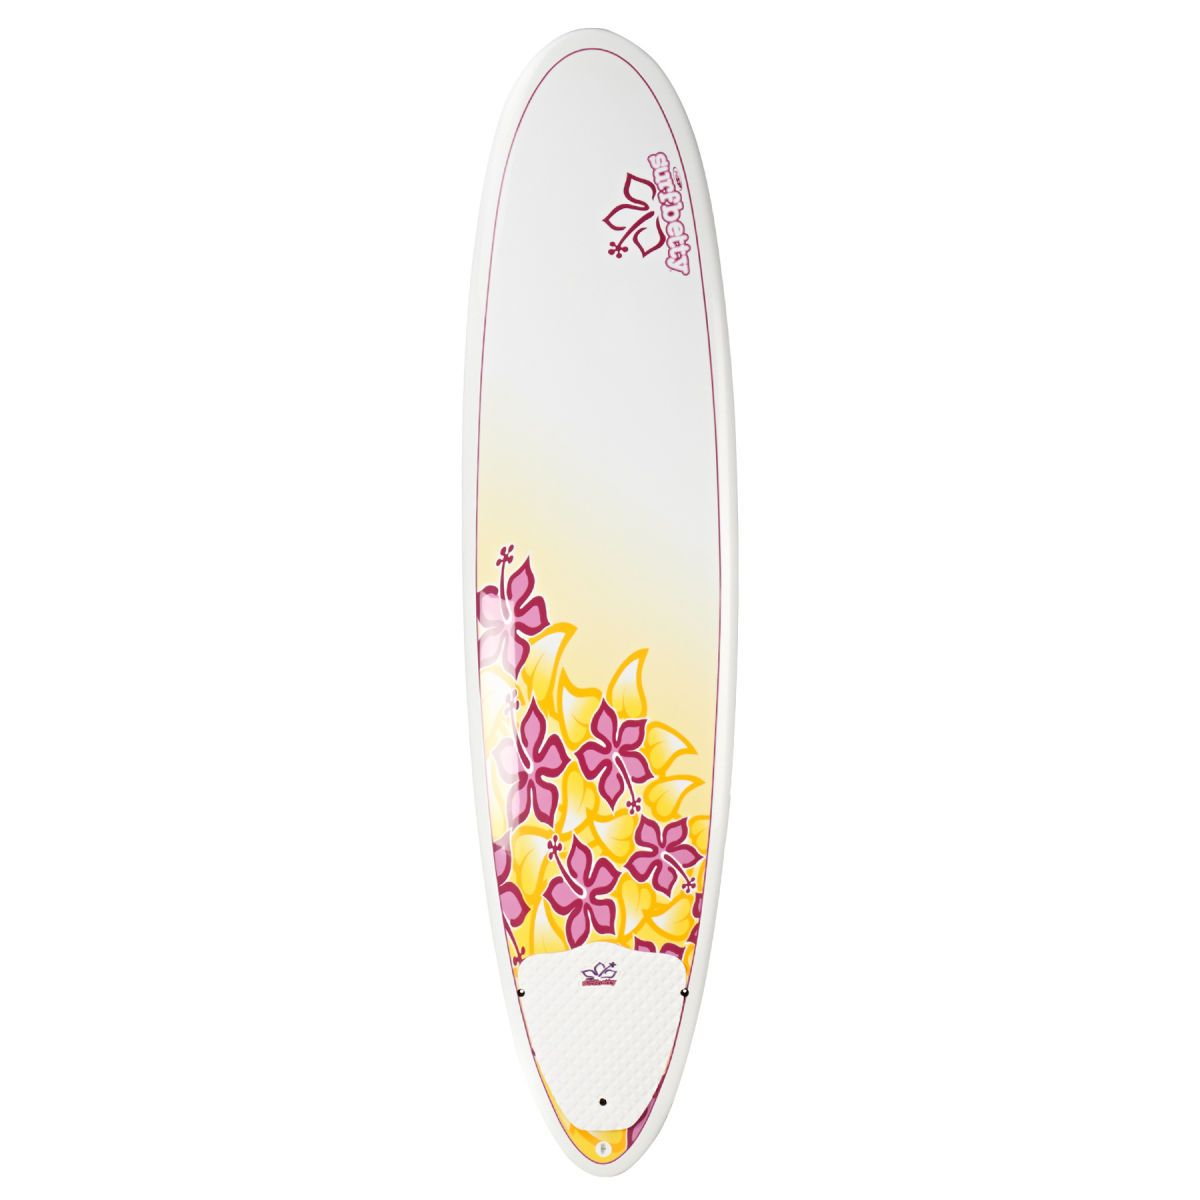 NSP Surf Betty Fun Surfboard - 7ft 6 | Free UK Delivery and Returns